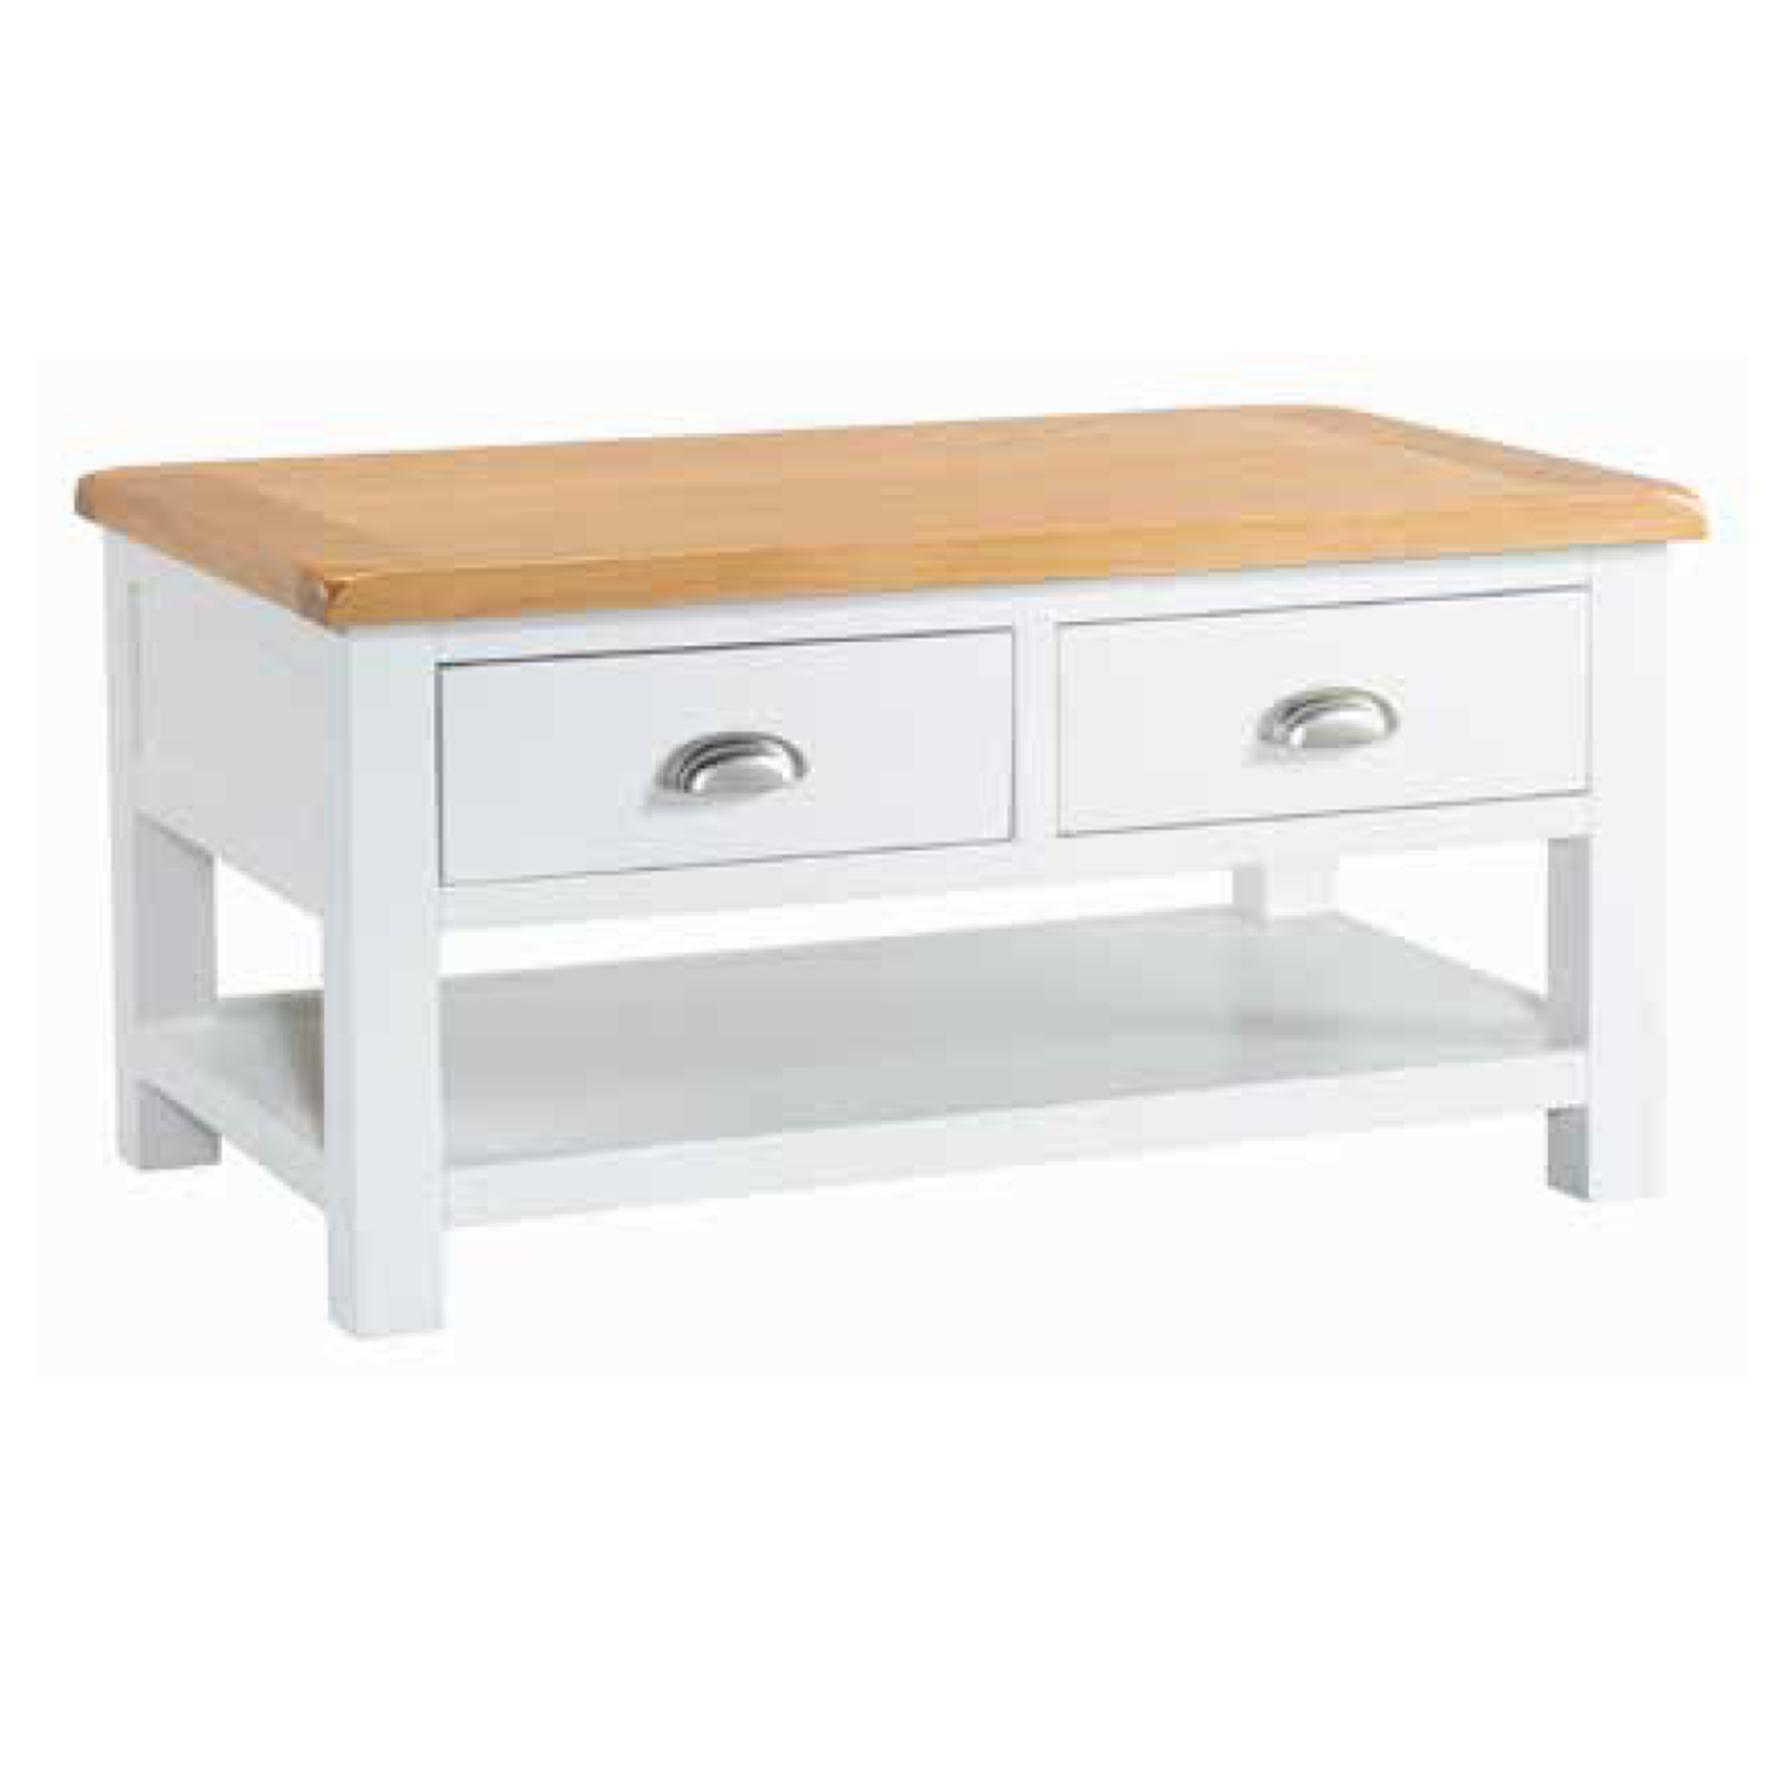 Halle - Coffee Table with 2 Drawers